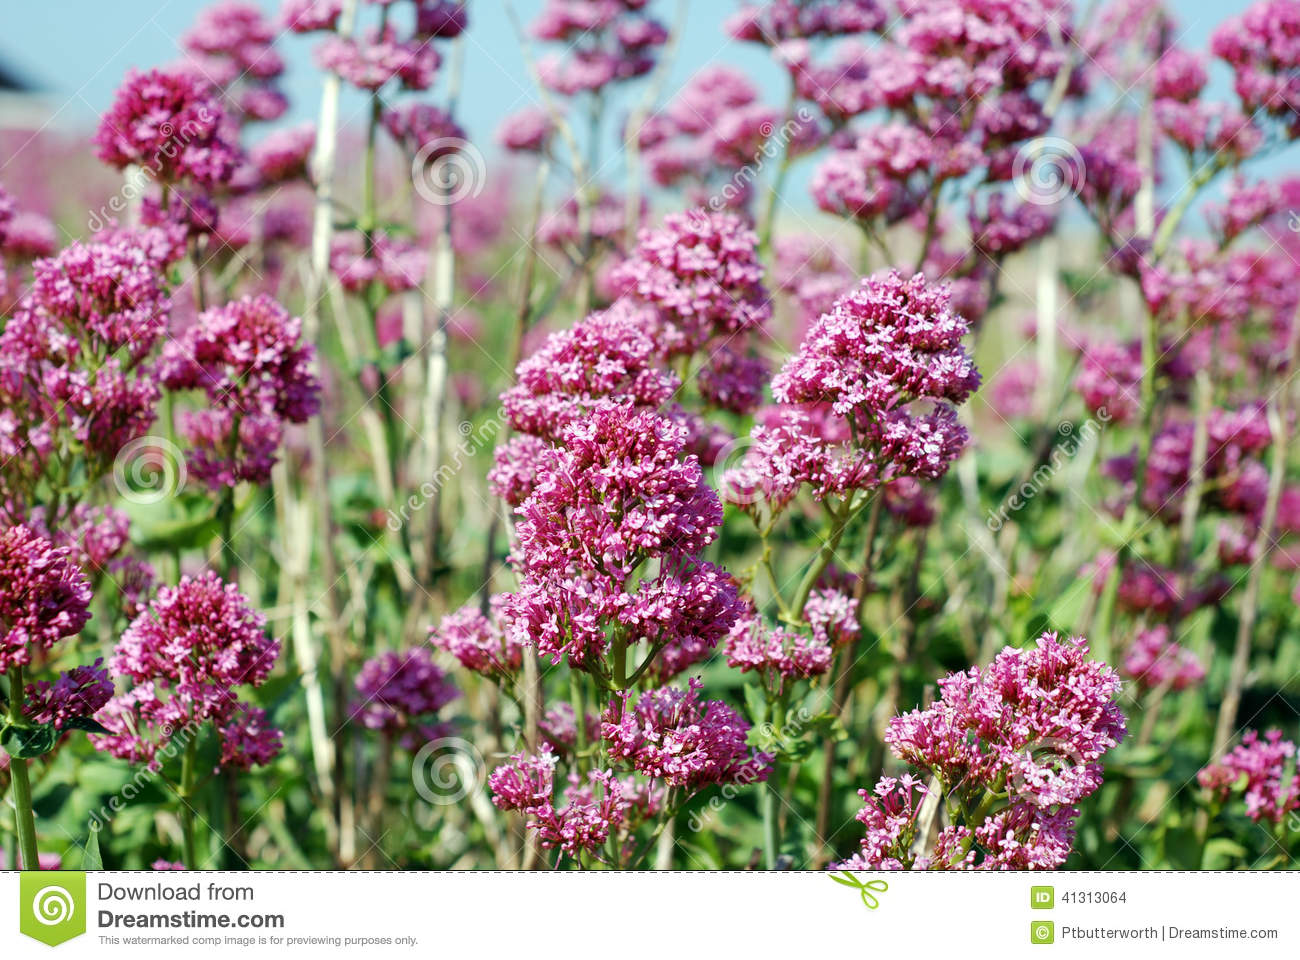 Wild pink flowers stock photo image of environment flowers 41313064 wild pink flowers mightylinksfo Image collections